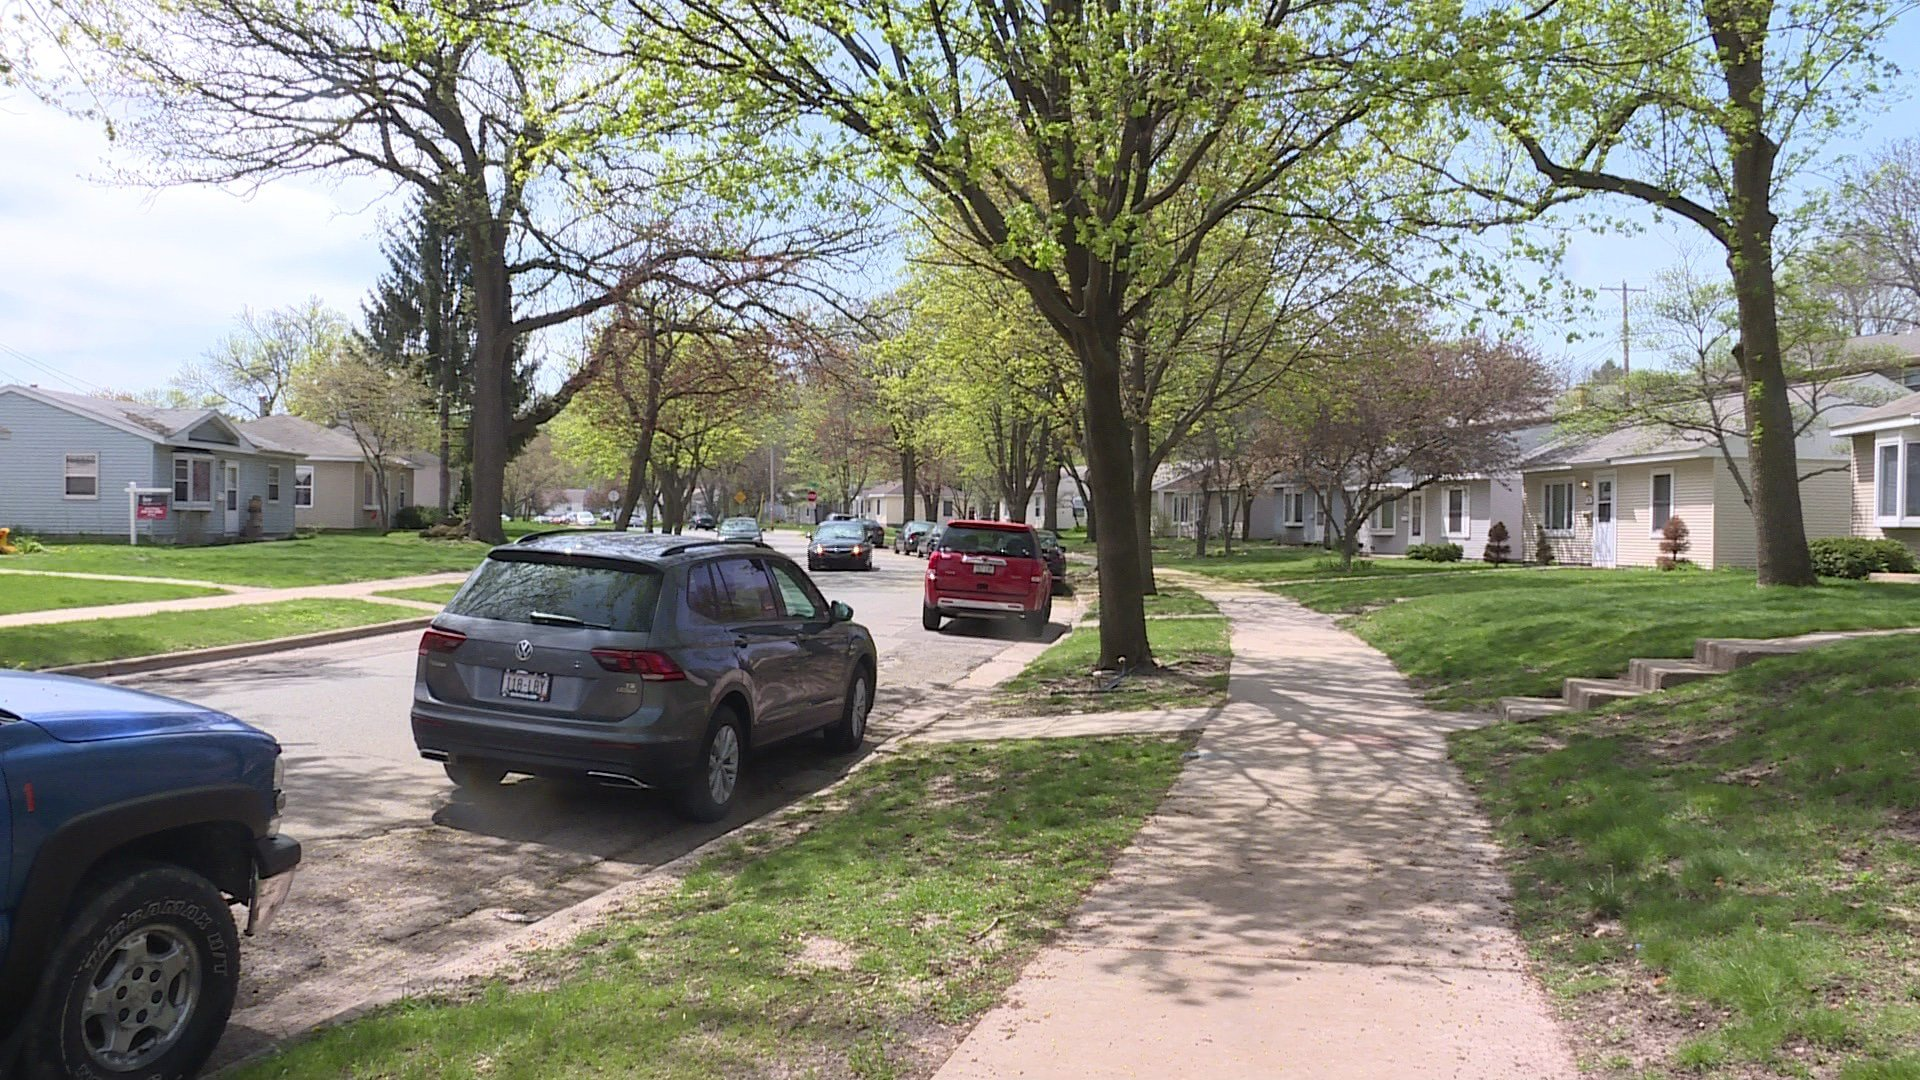 The attempted burglary took place at a man's home in this neighborhood on Craig Avenue, off of University Avenue.